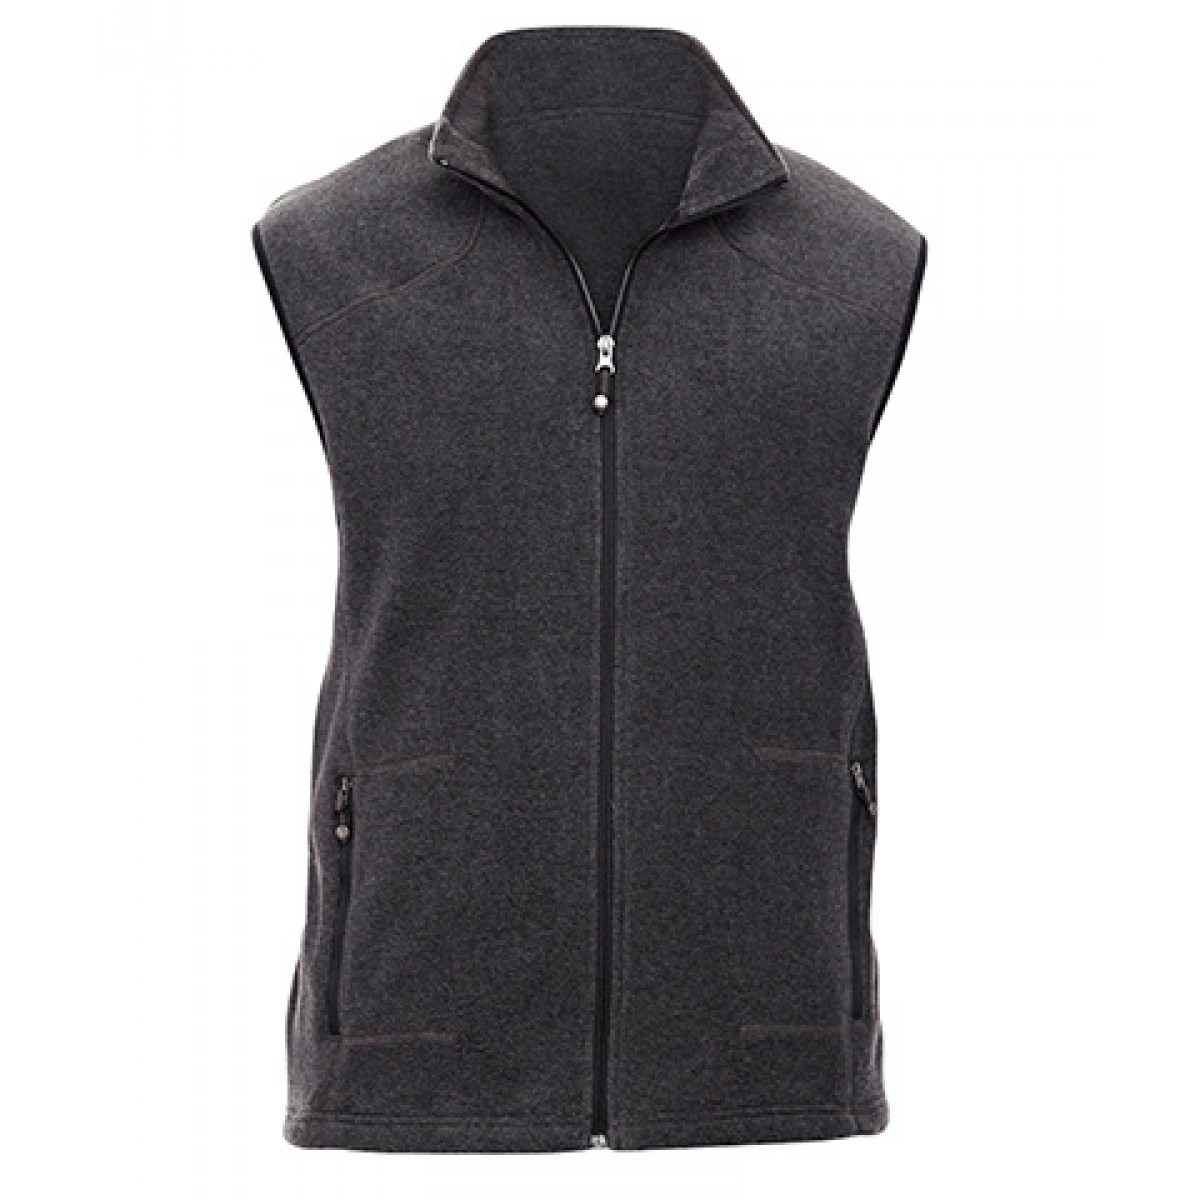 Men's Voyage Fleece Vest-Gray -2XL